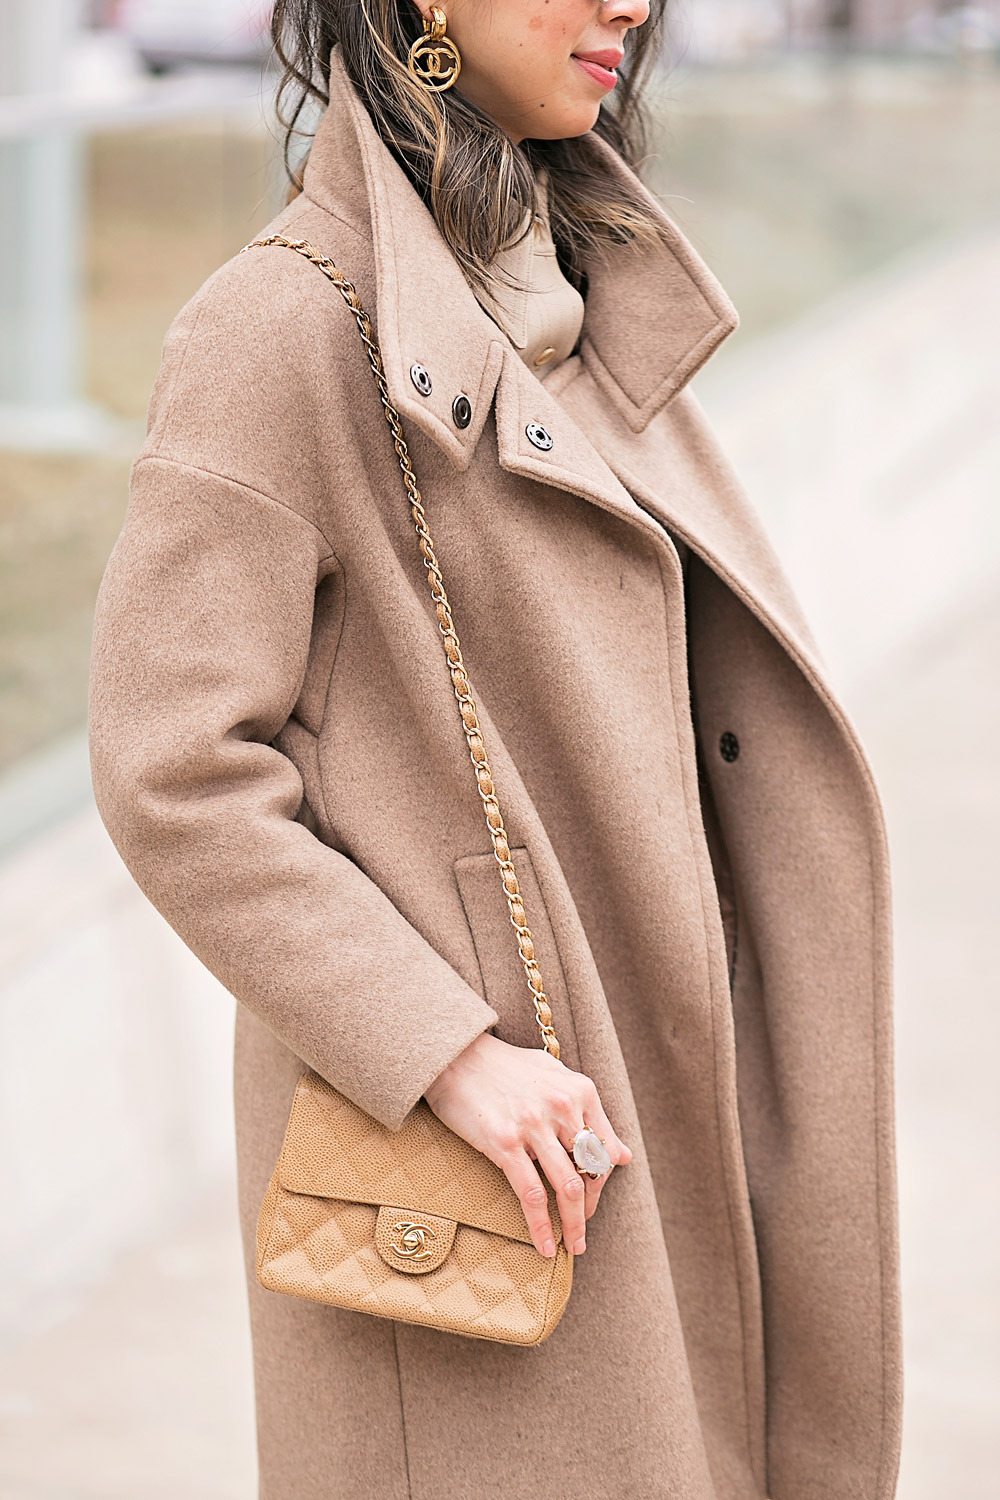 camel coat and beige coord set chanel earrings mini flap